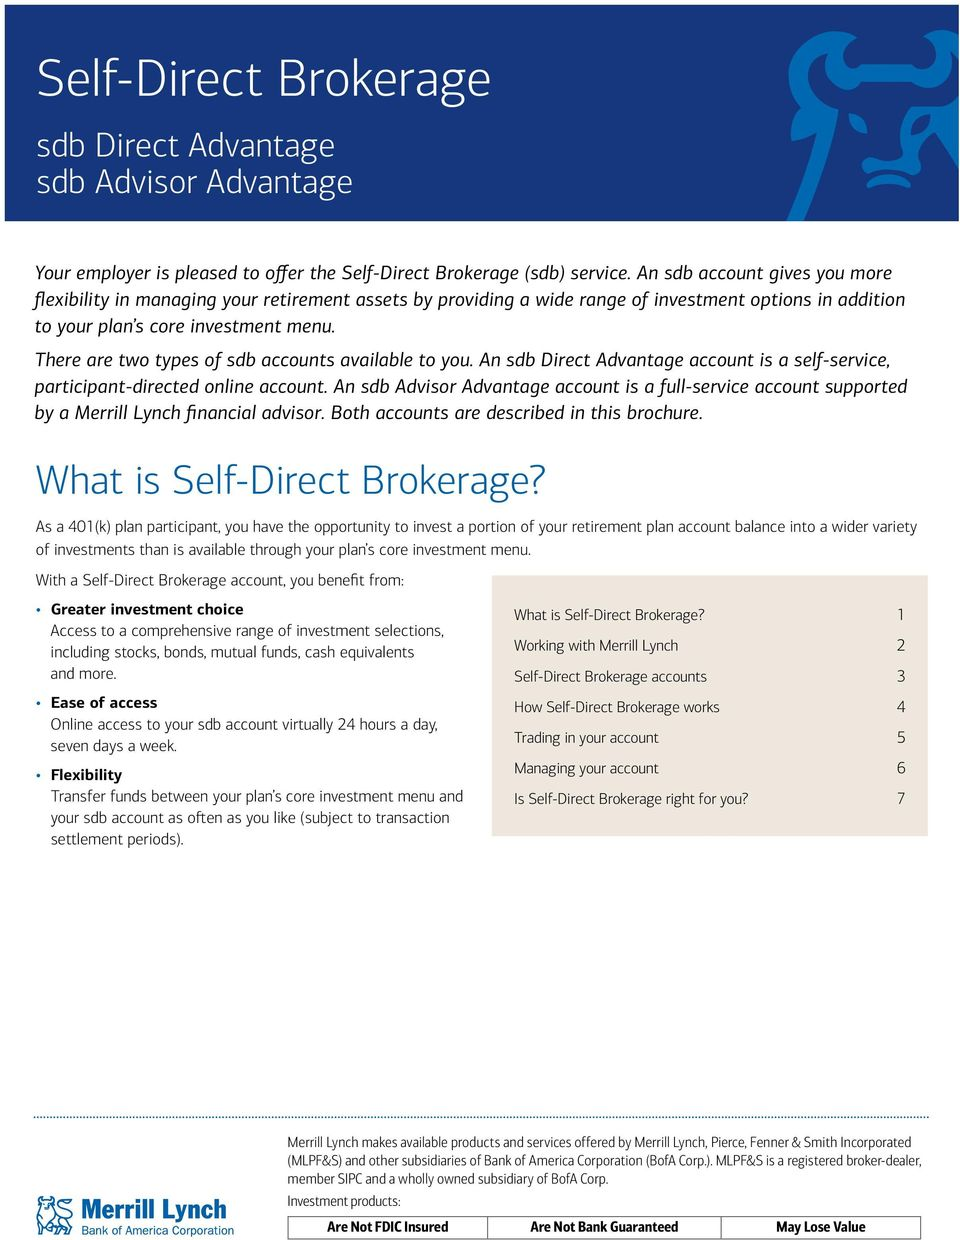 There are two types of sdb accounts available to you. An sdb Direct Advantage account is a self-service, participant-directed online account.